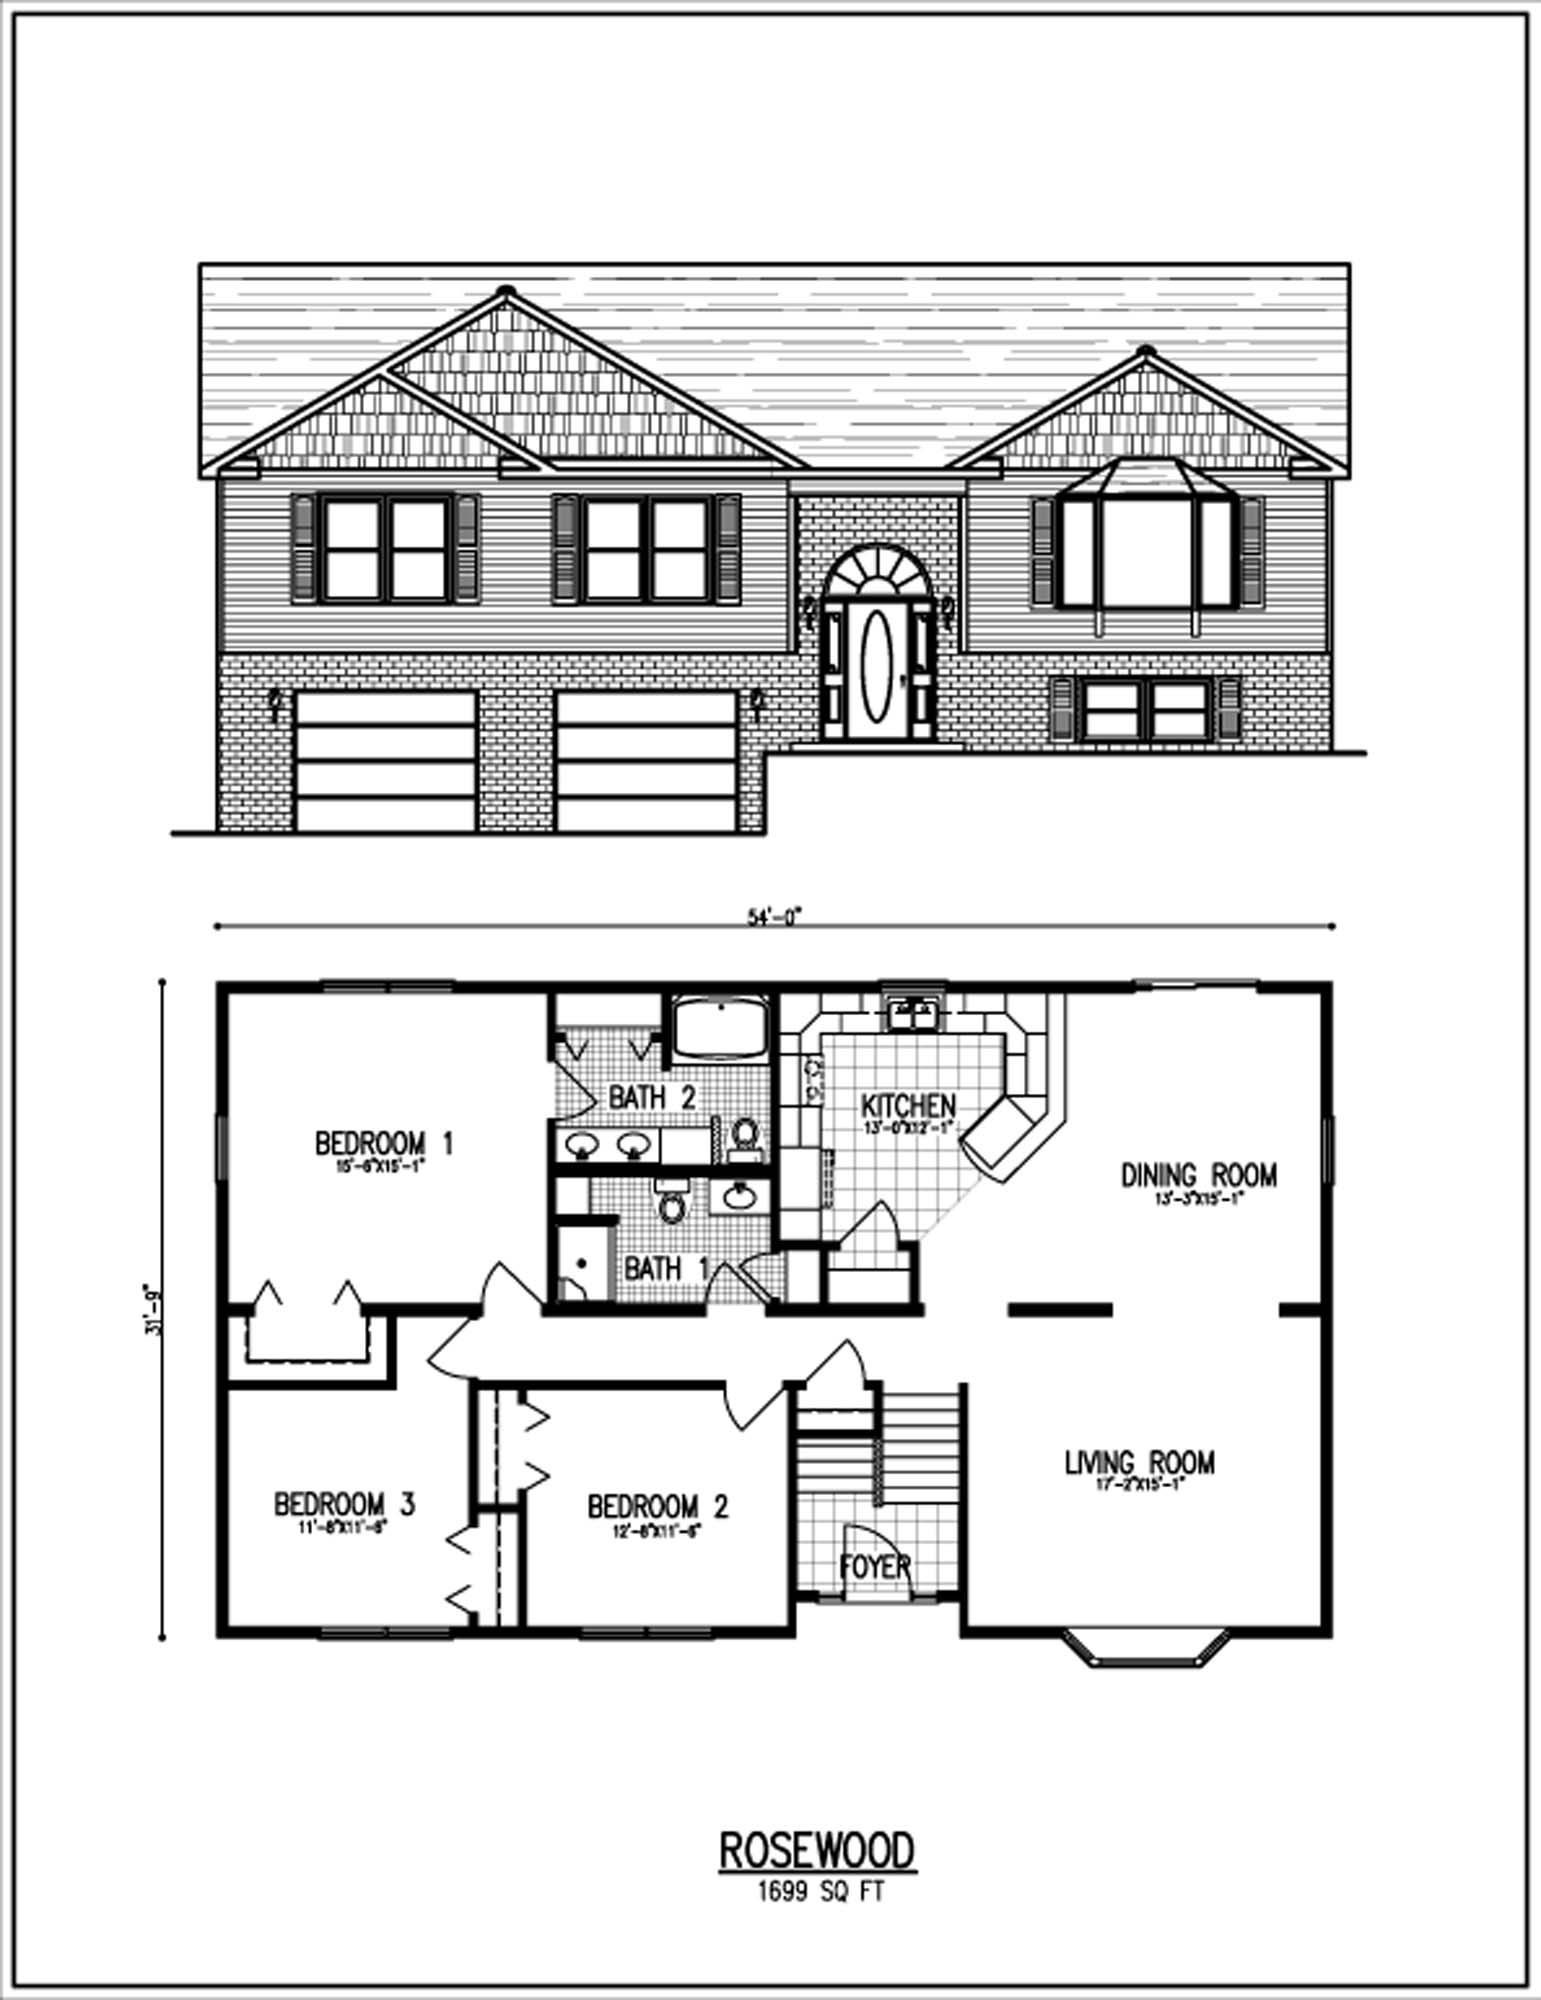 Raised ranch house plans house design plans for Raised ranch home plans